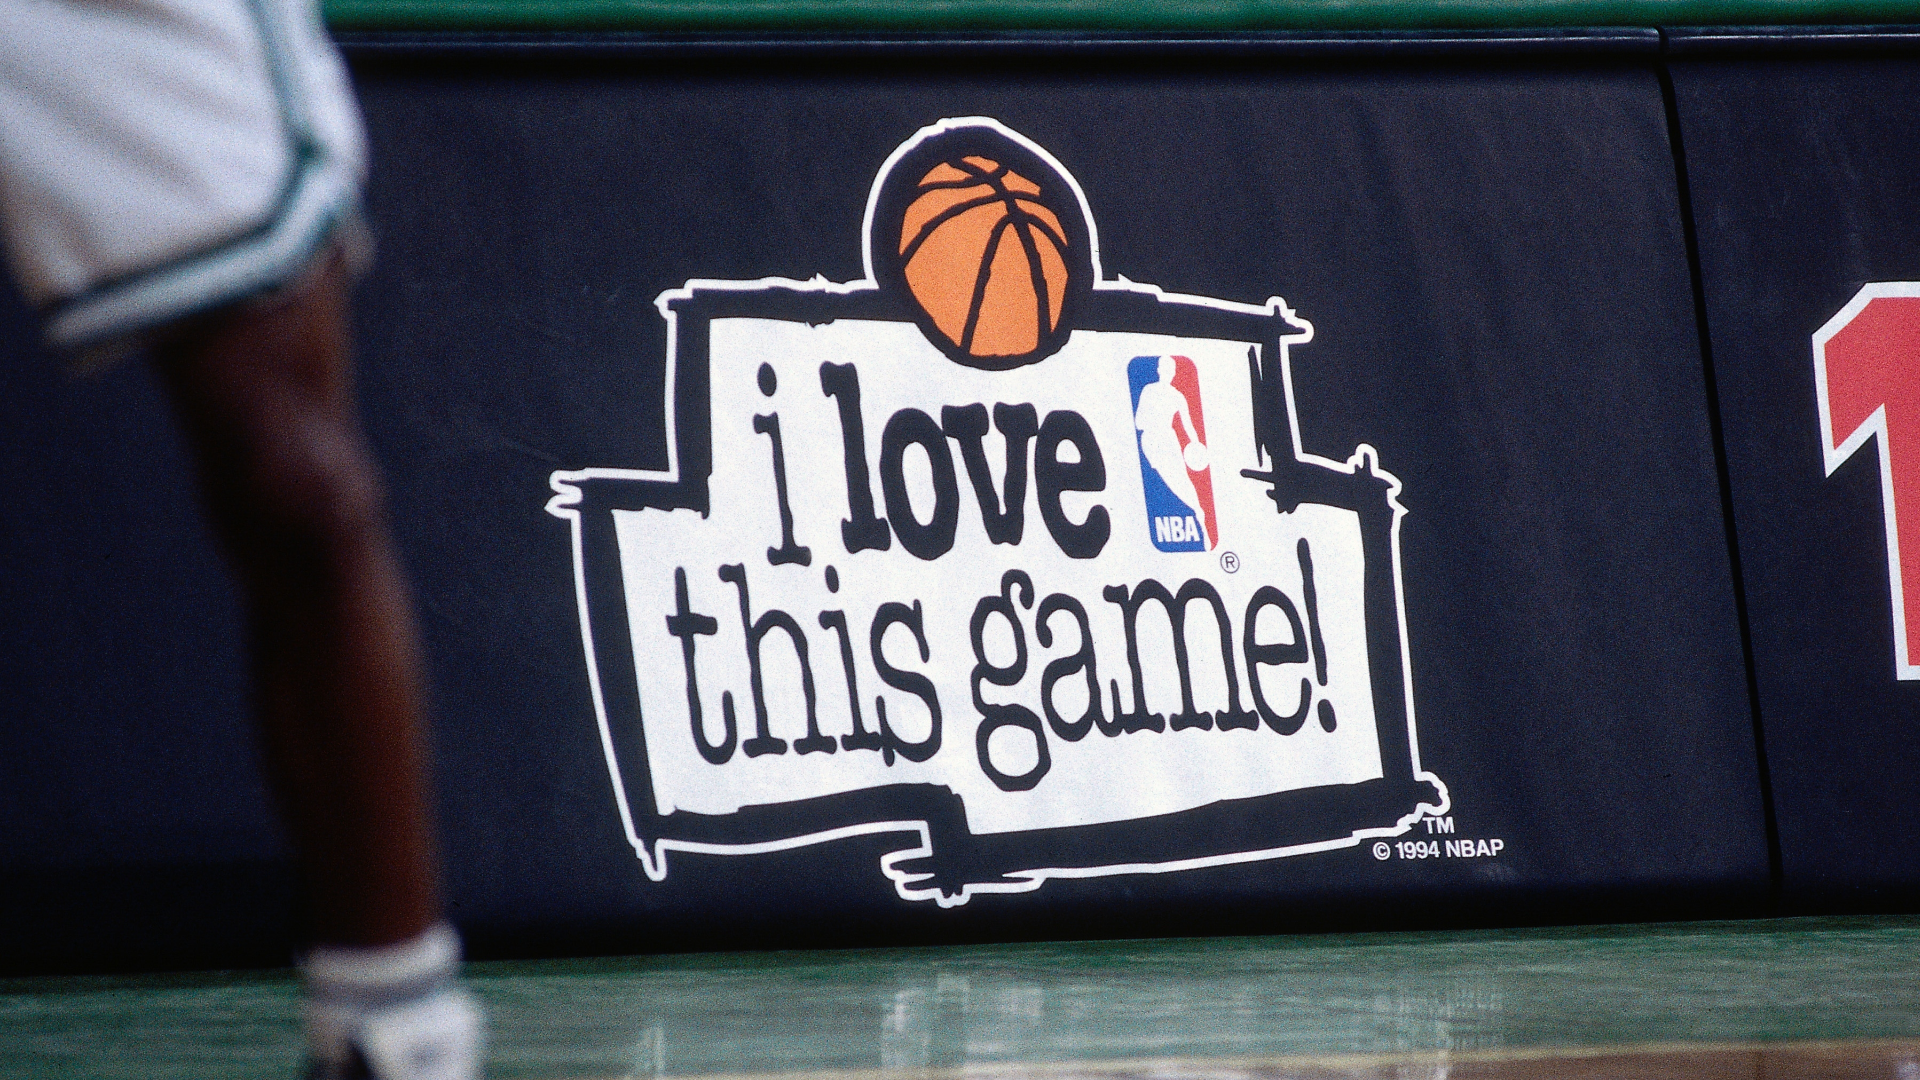 Remembering The Nba S Classic I Love This Game Commercials Nba Com Canada The Official Site Of The Nba